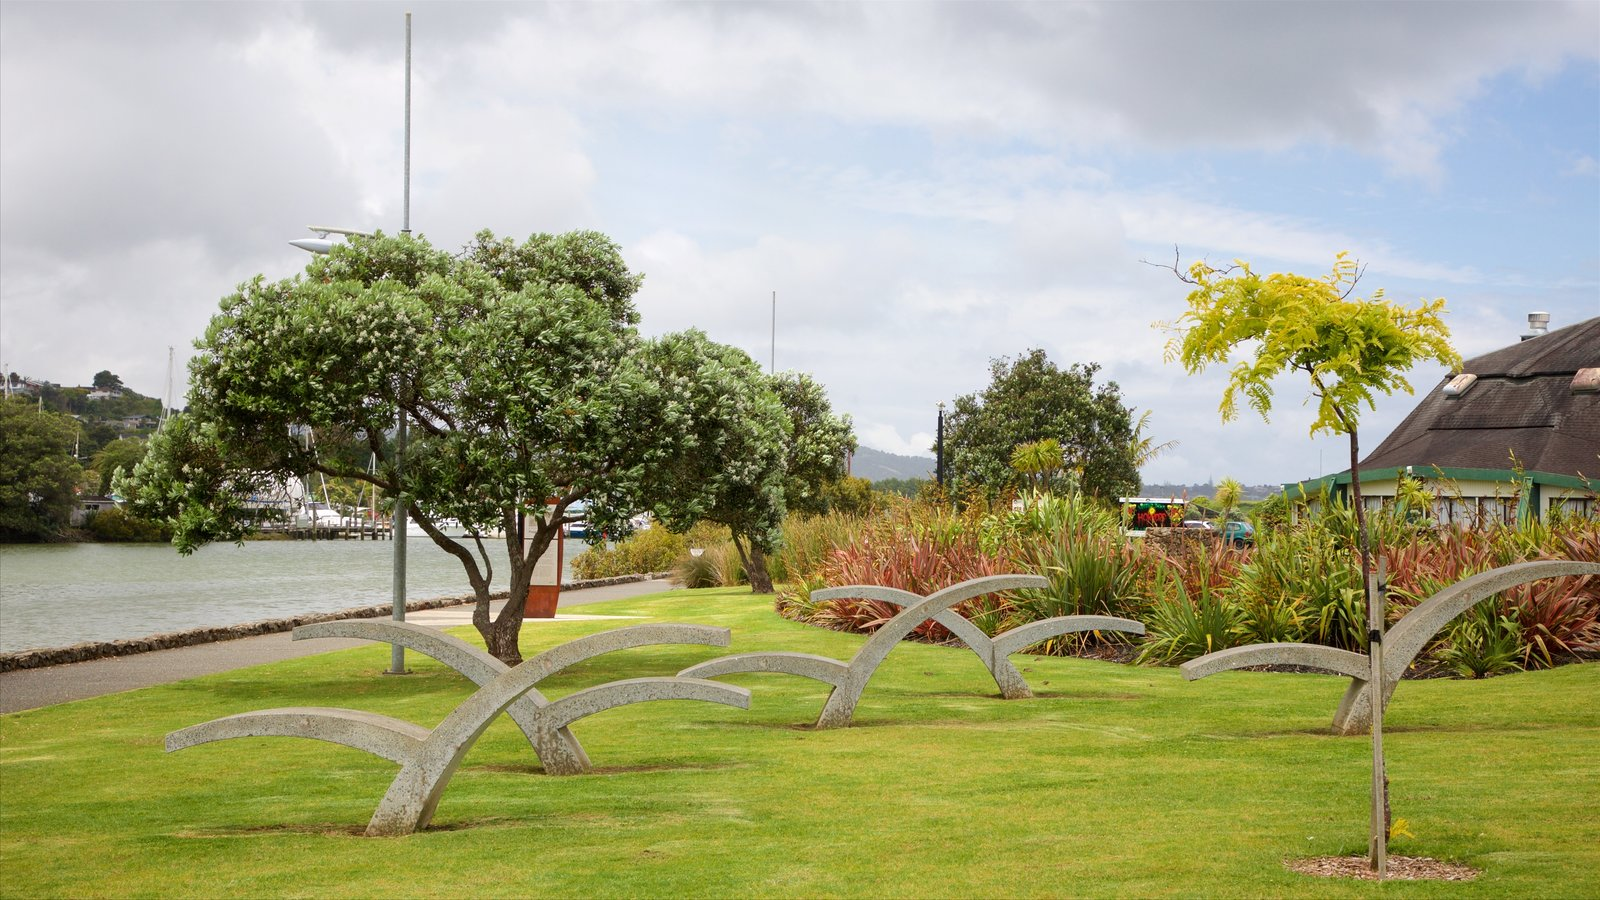 Whangarei featuring a river or creek, outdoor art and a park